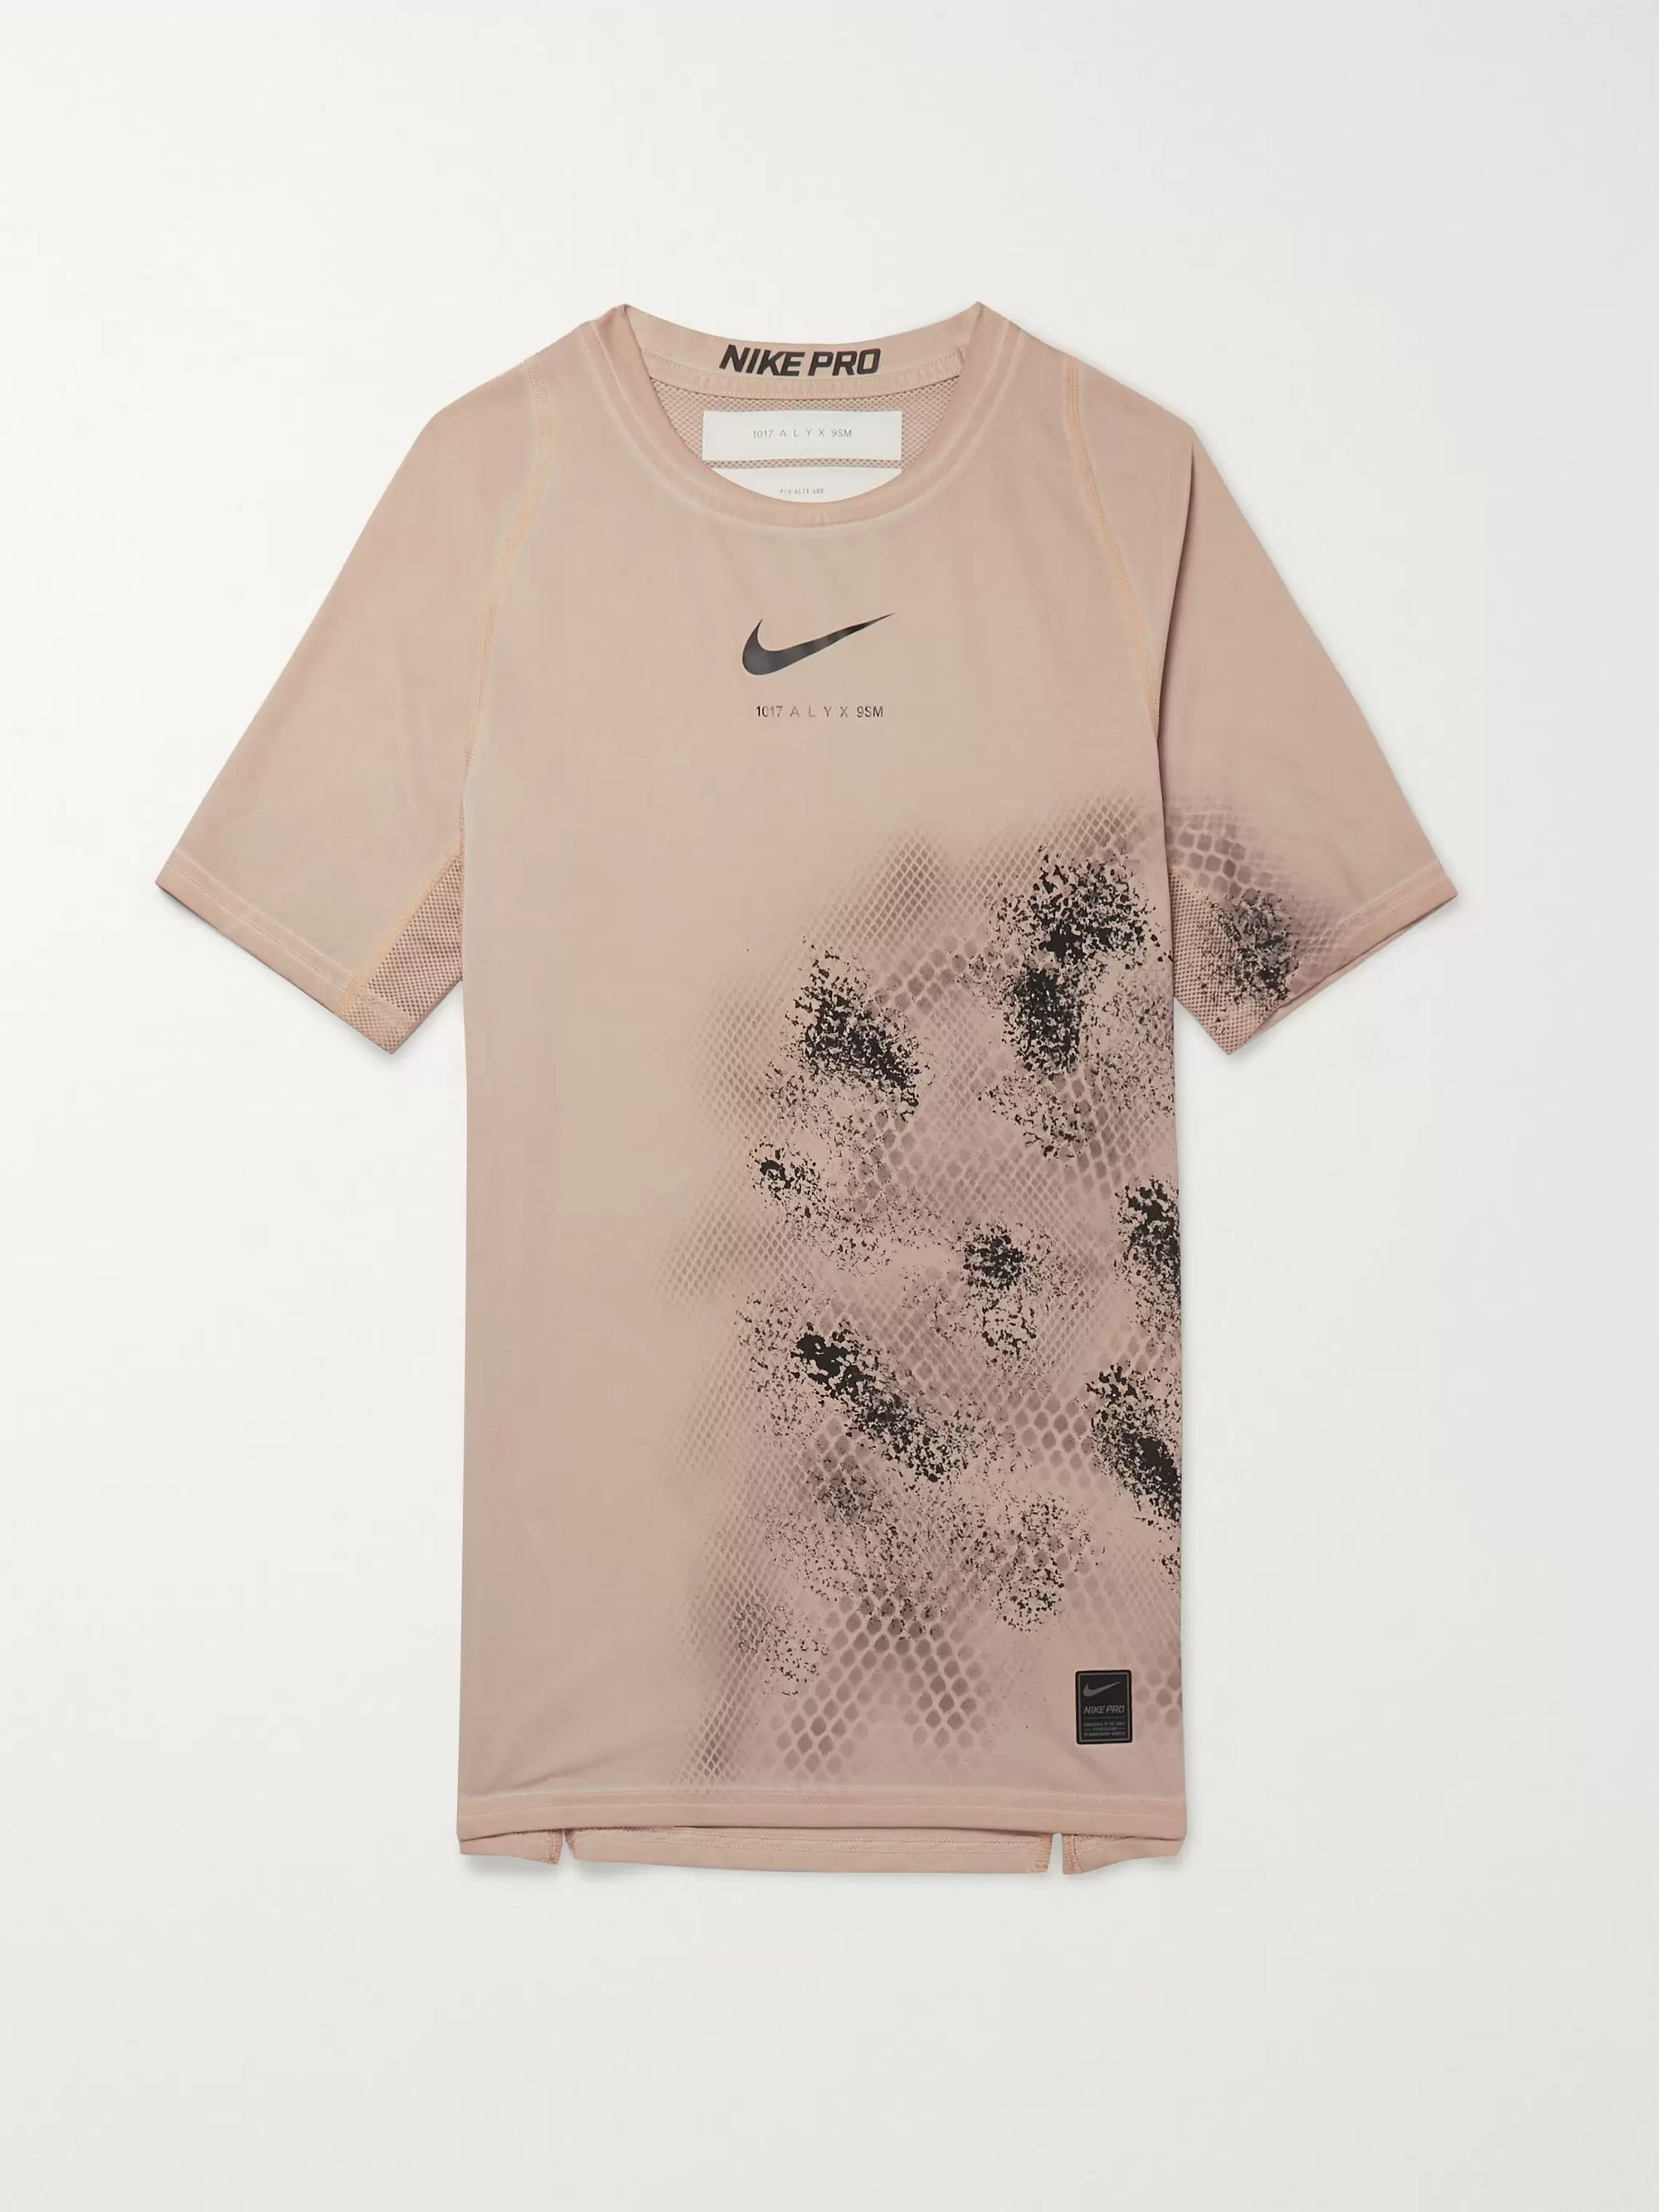 1017 ALYX 9SM + Nike Compression Printed Mesh-Panelled Stretch-Jersey T-Shirt